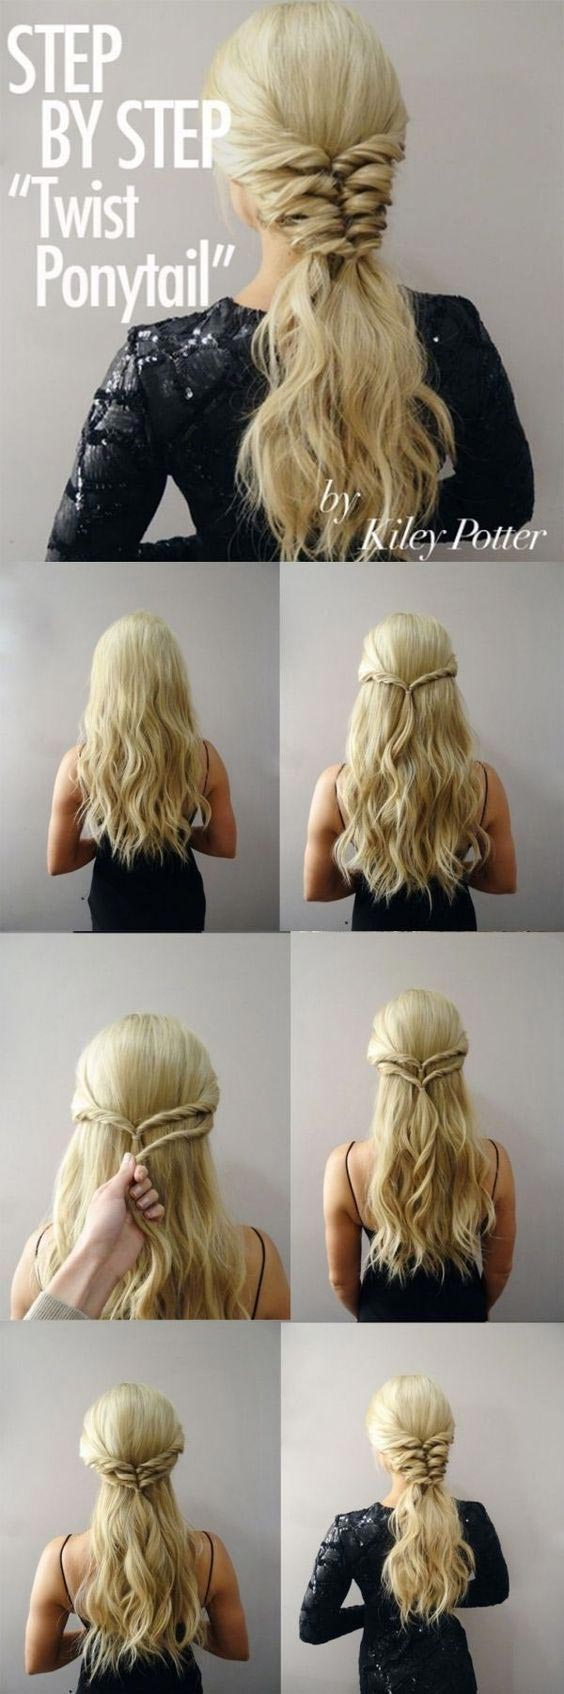 Try A Different Look With The Twist Pony Tail